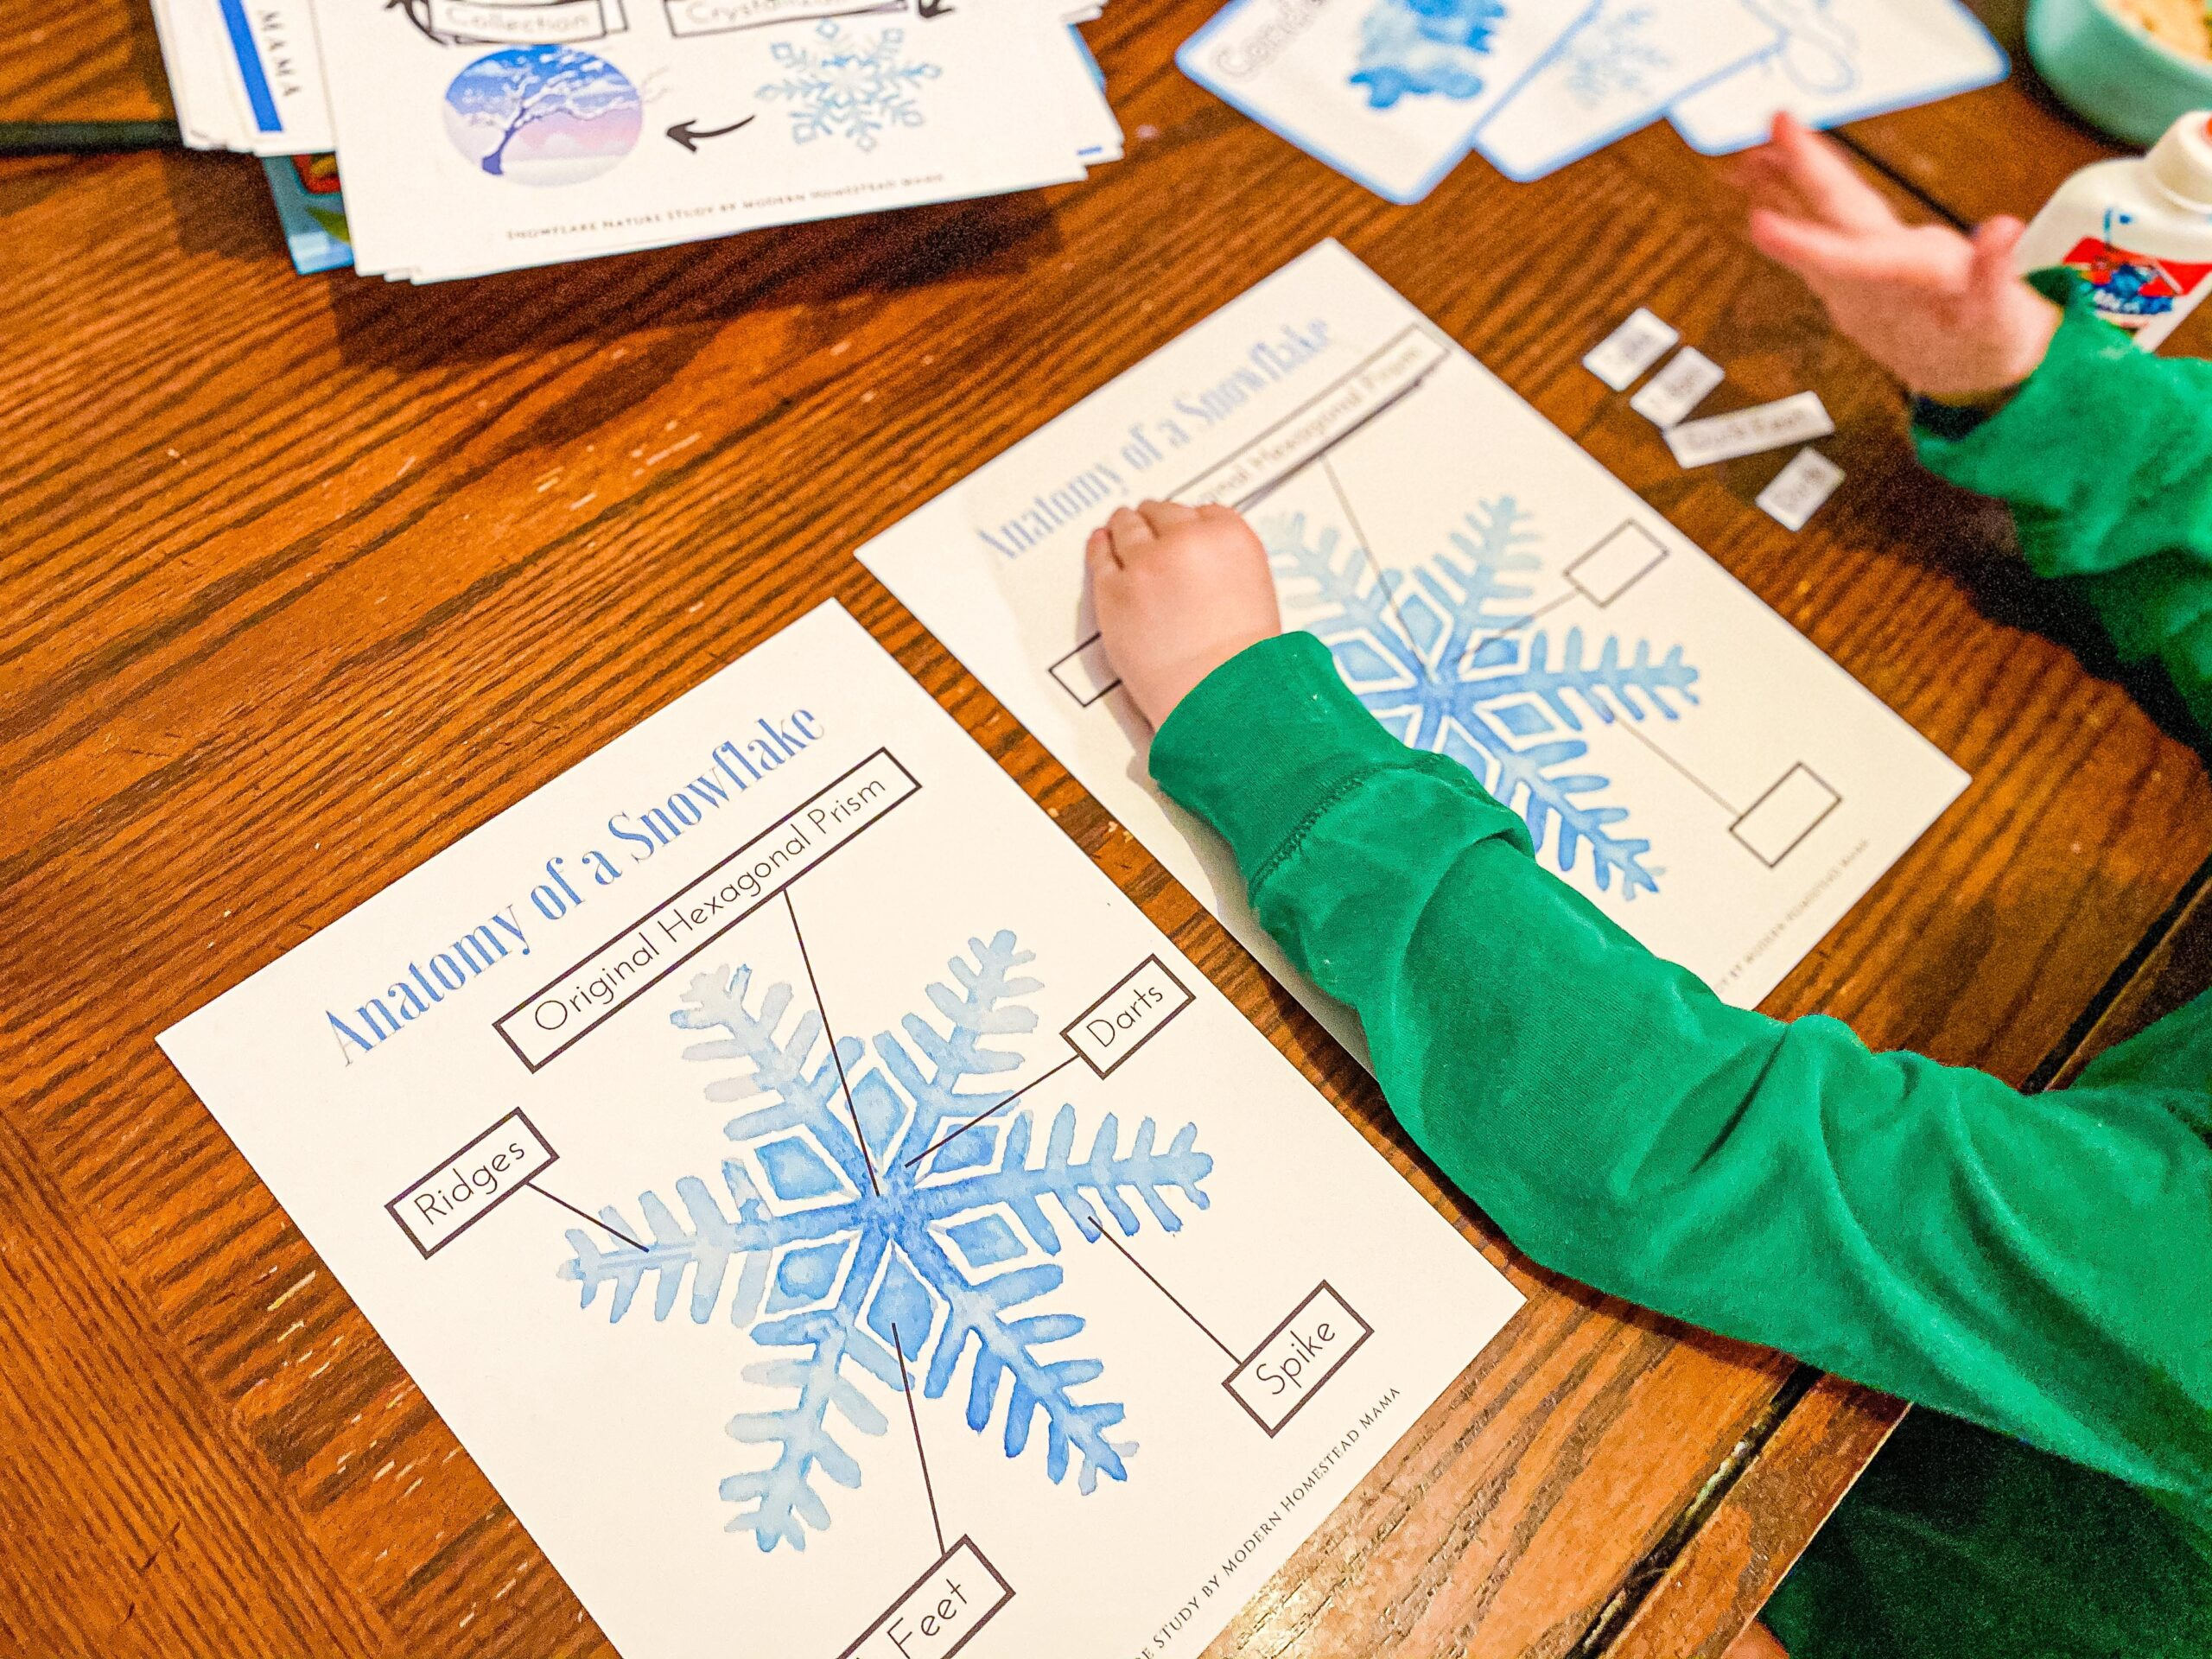 Anatomy of a Snowflake Worksheet